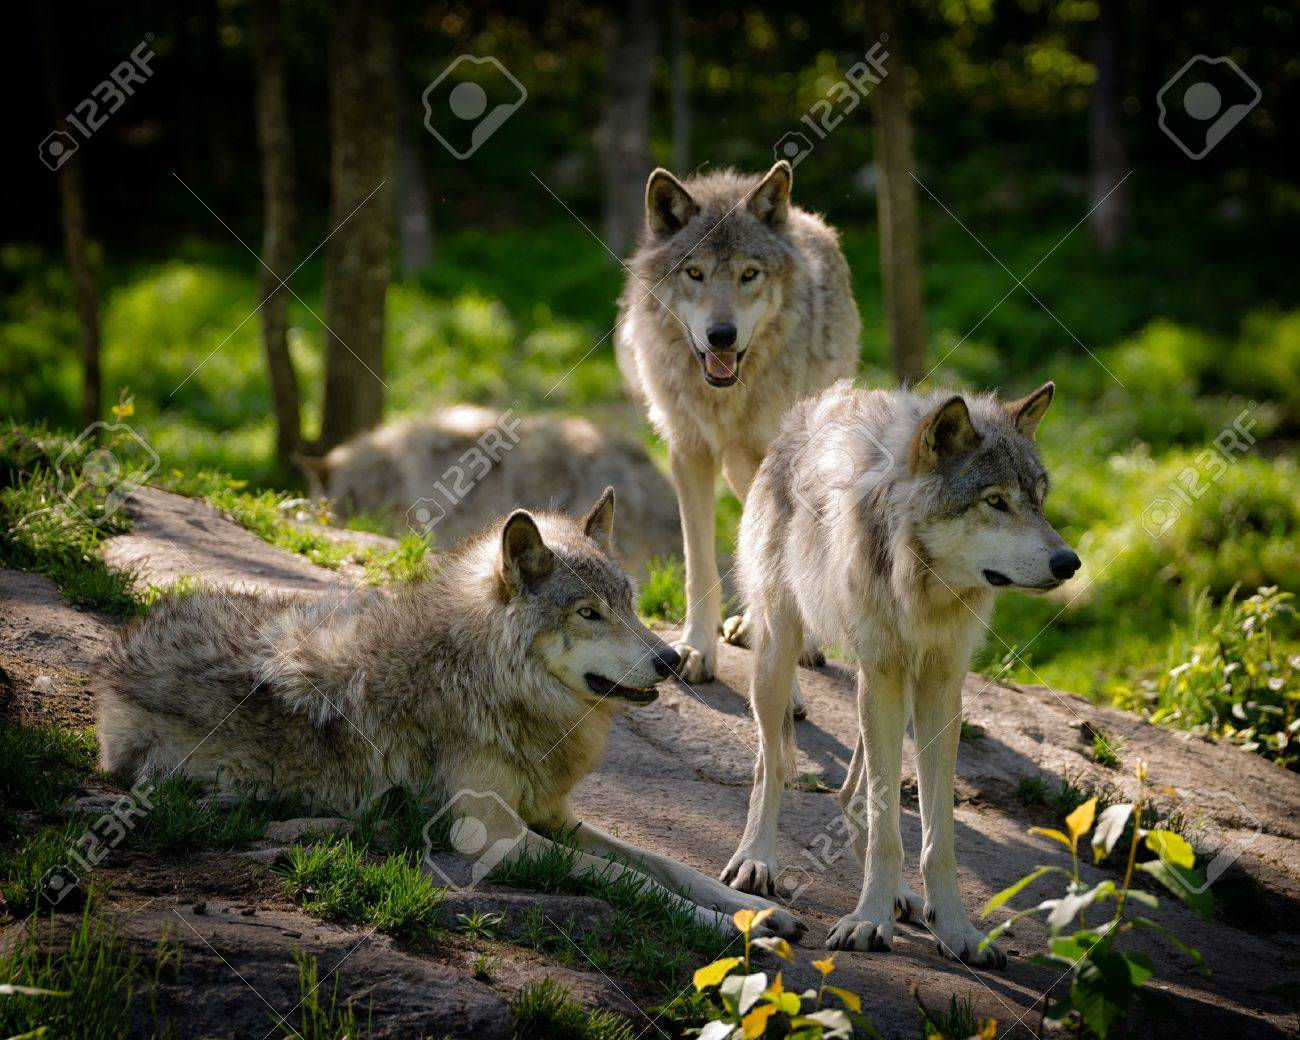 A small pack of three Eastern timber wolves gather on a rocky slope in the North American wilderness. - 20012949